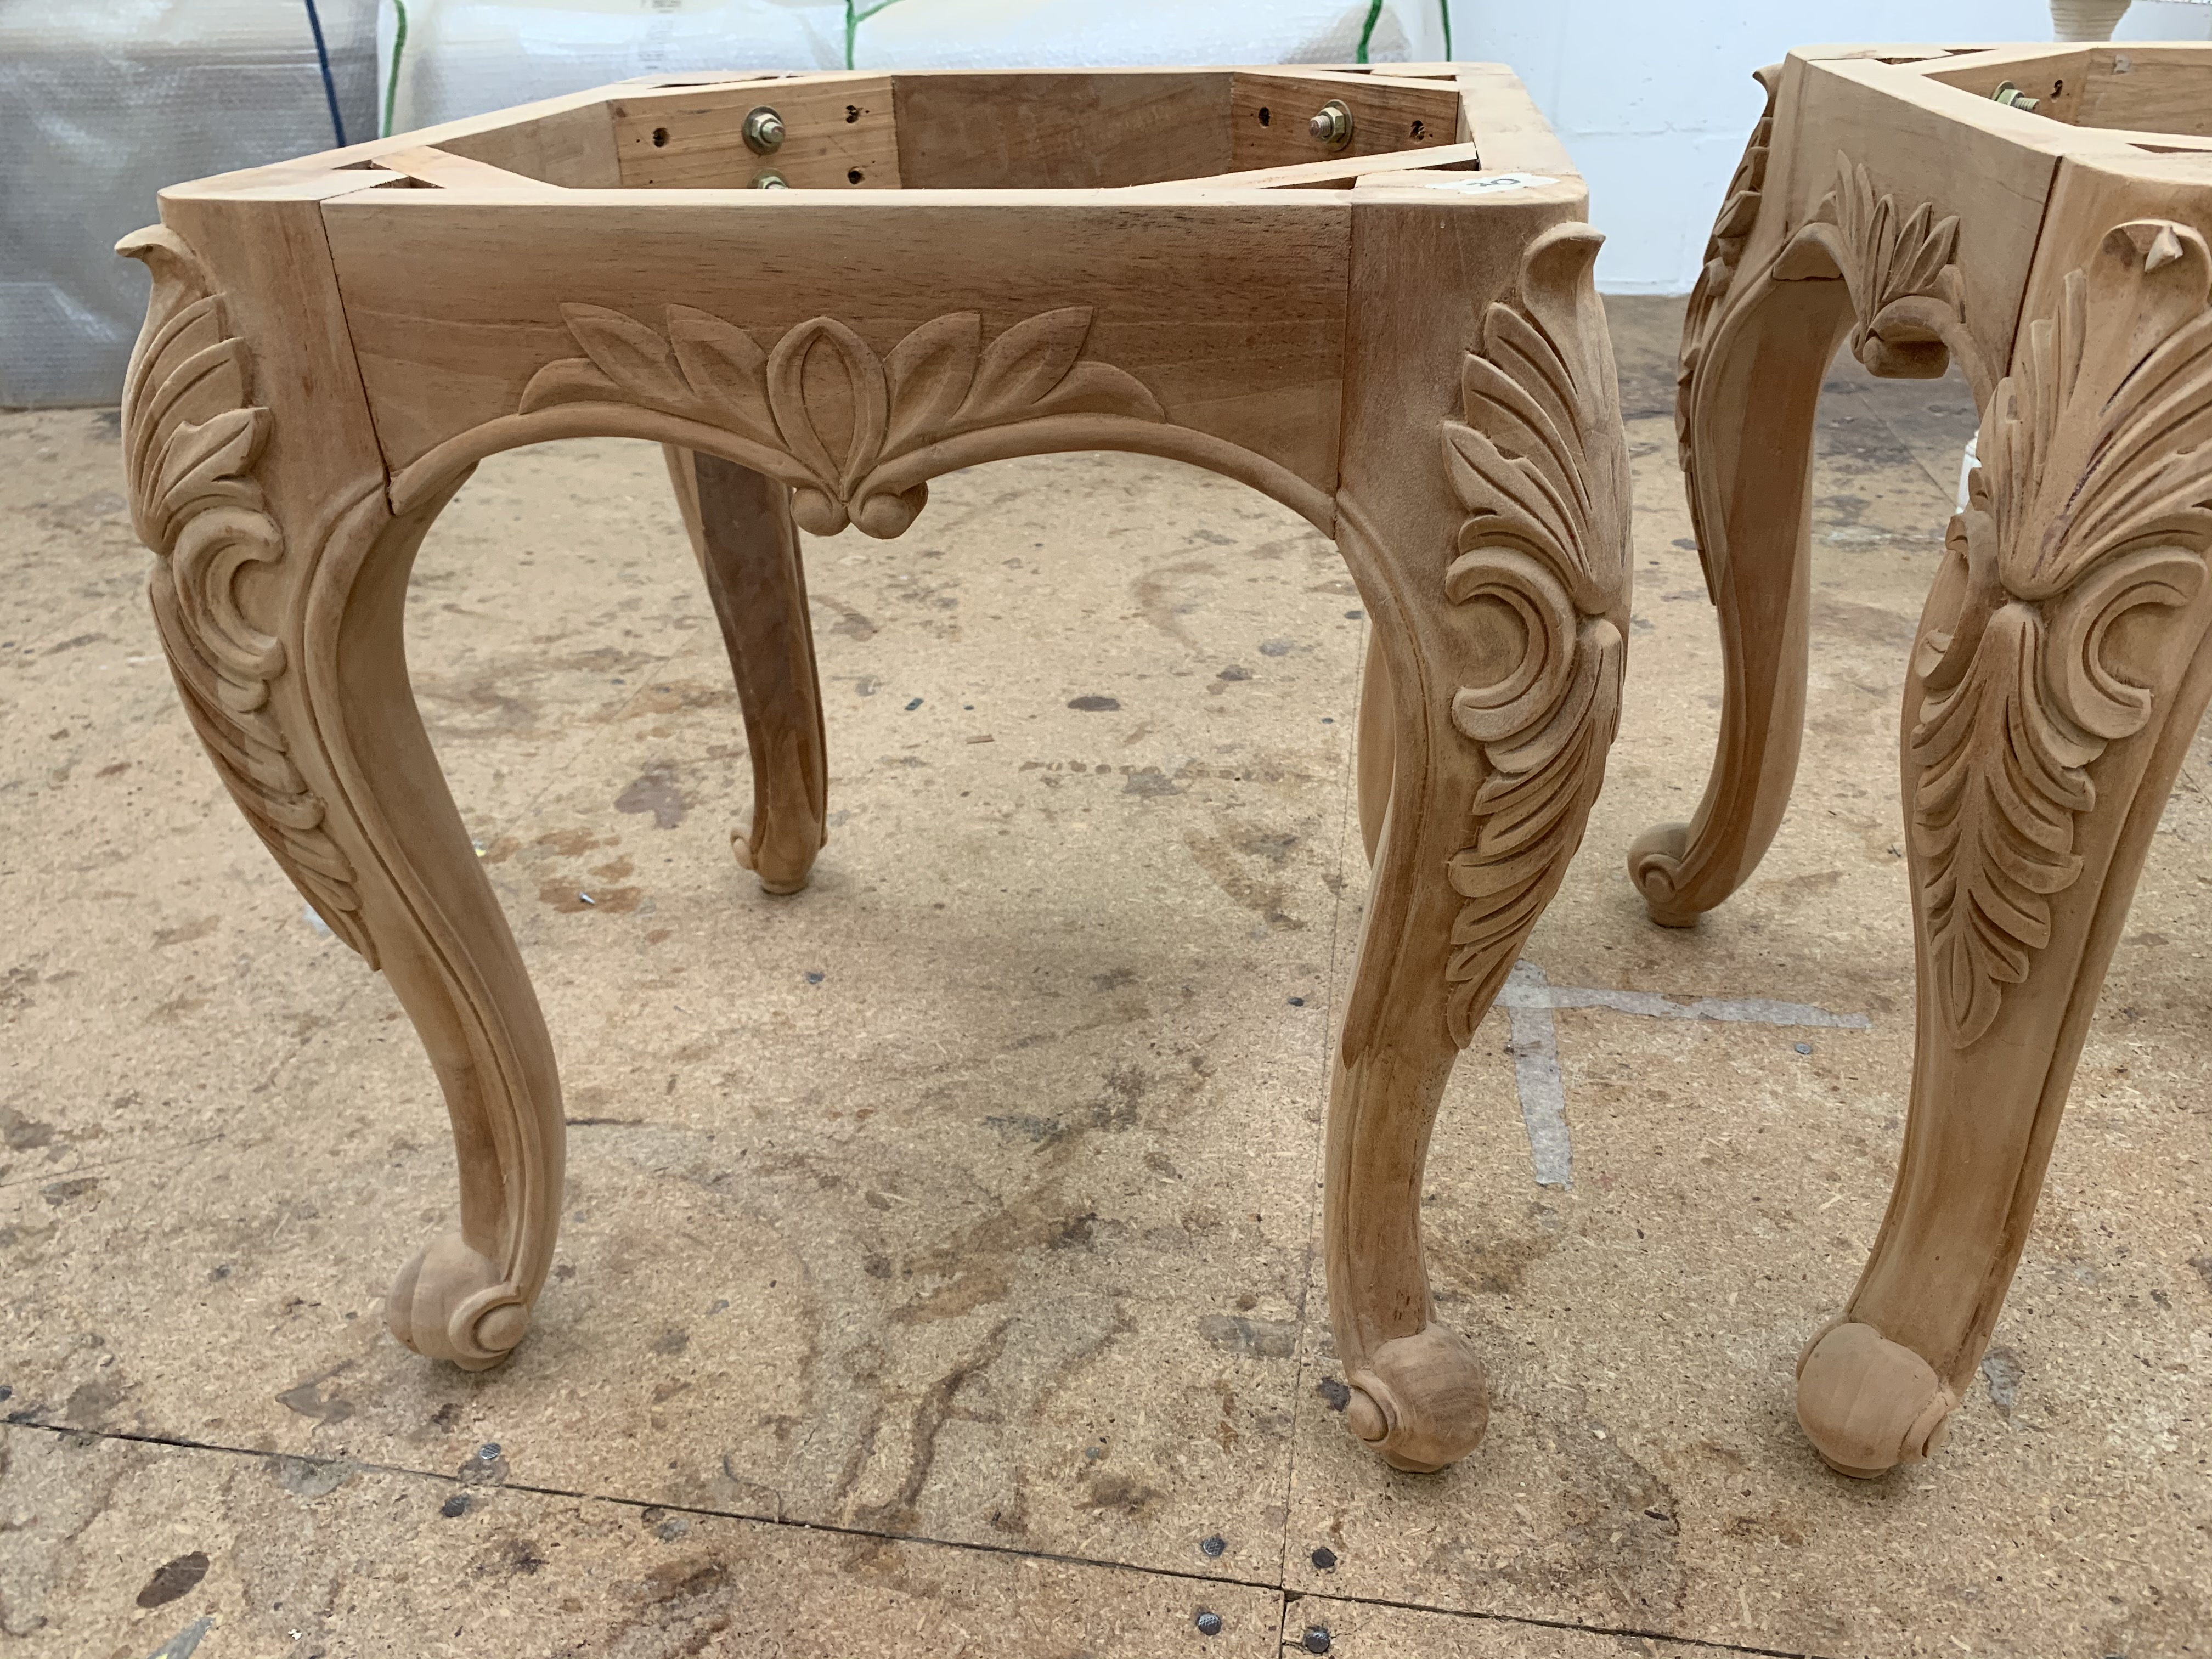 Lot 53 - Carved square small Table or Stool base, approx 2', requires finishing/polshing.